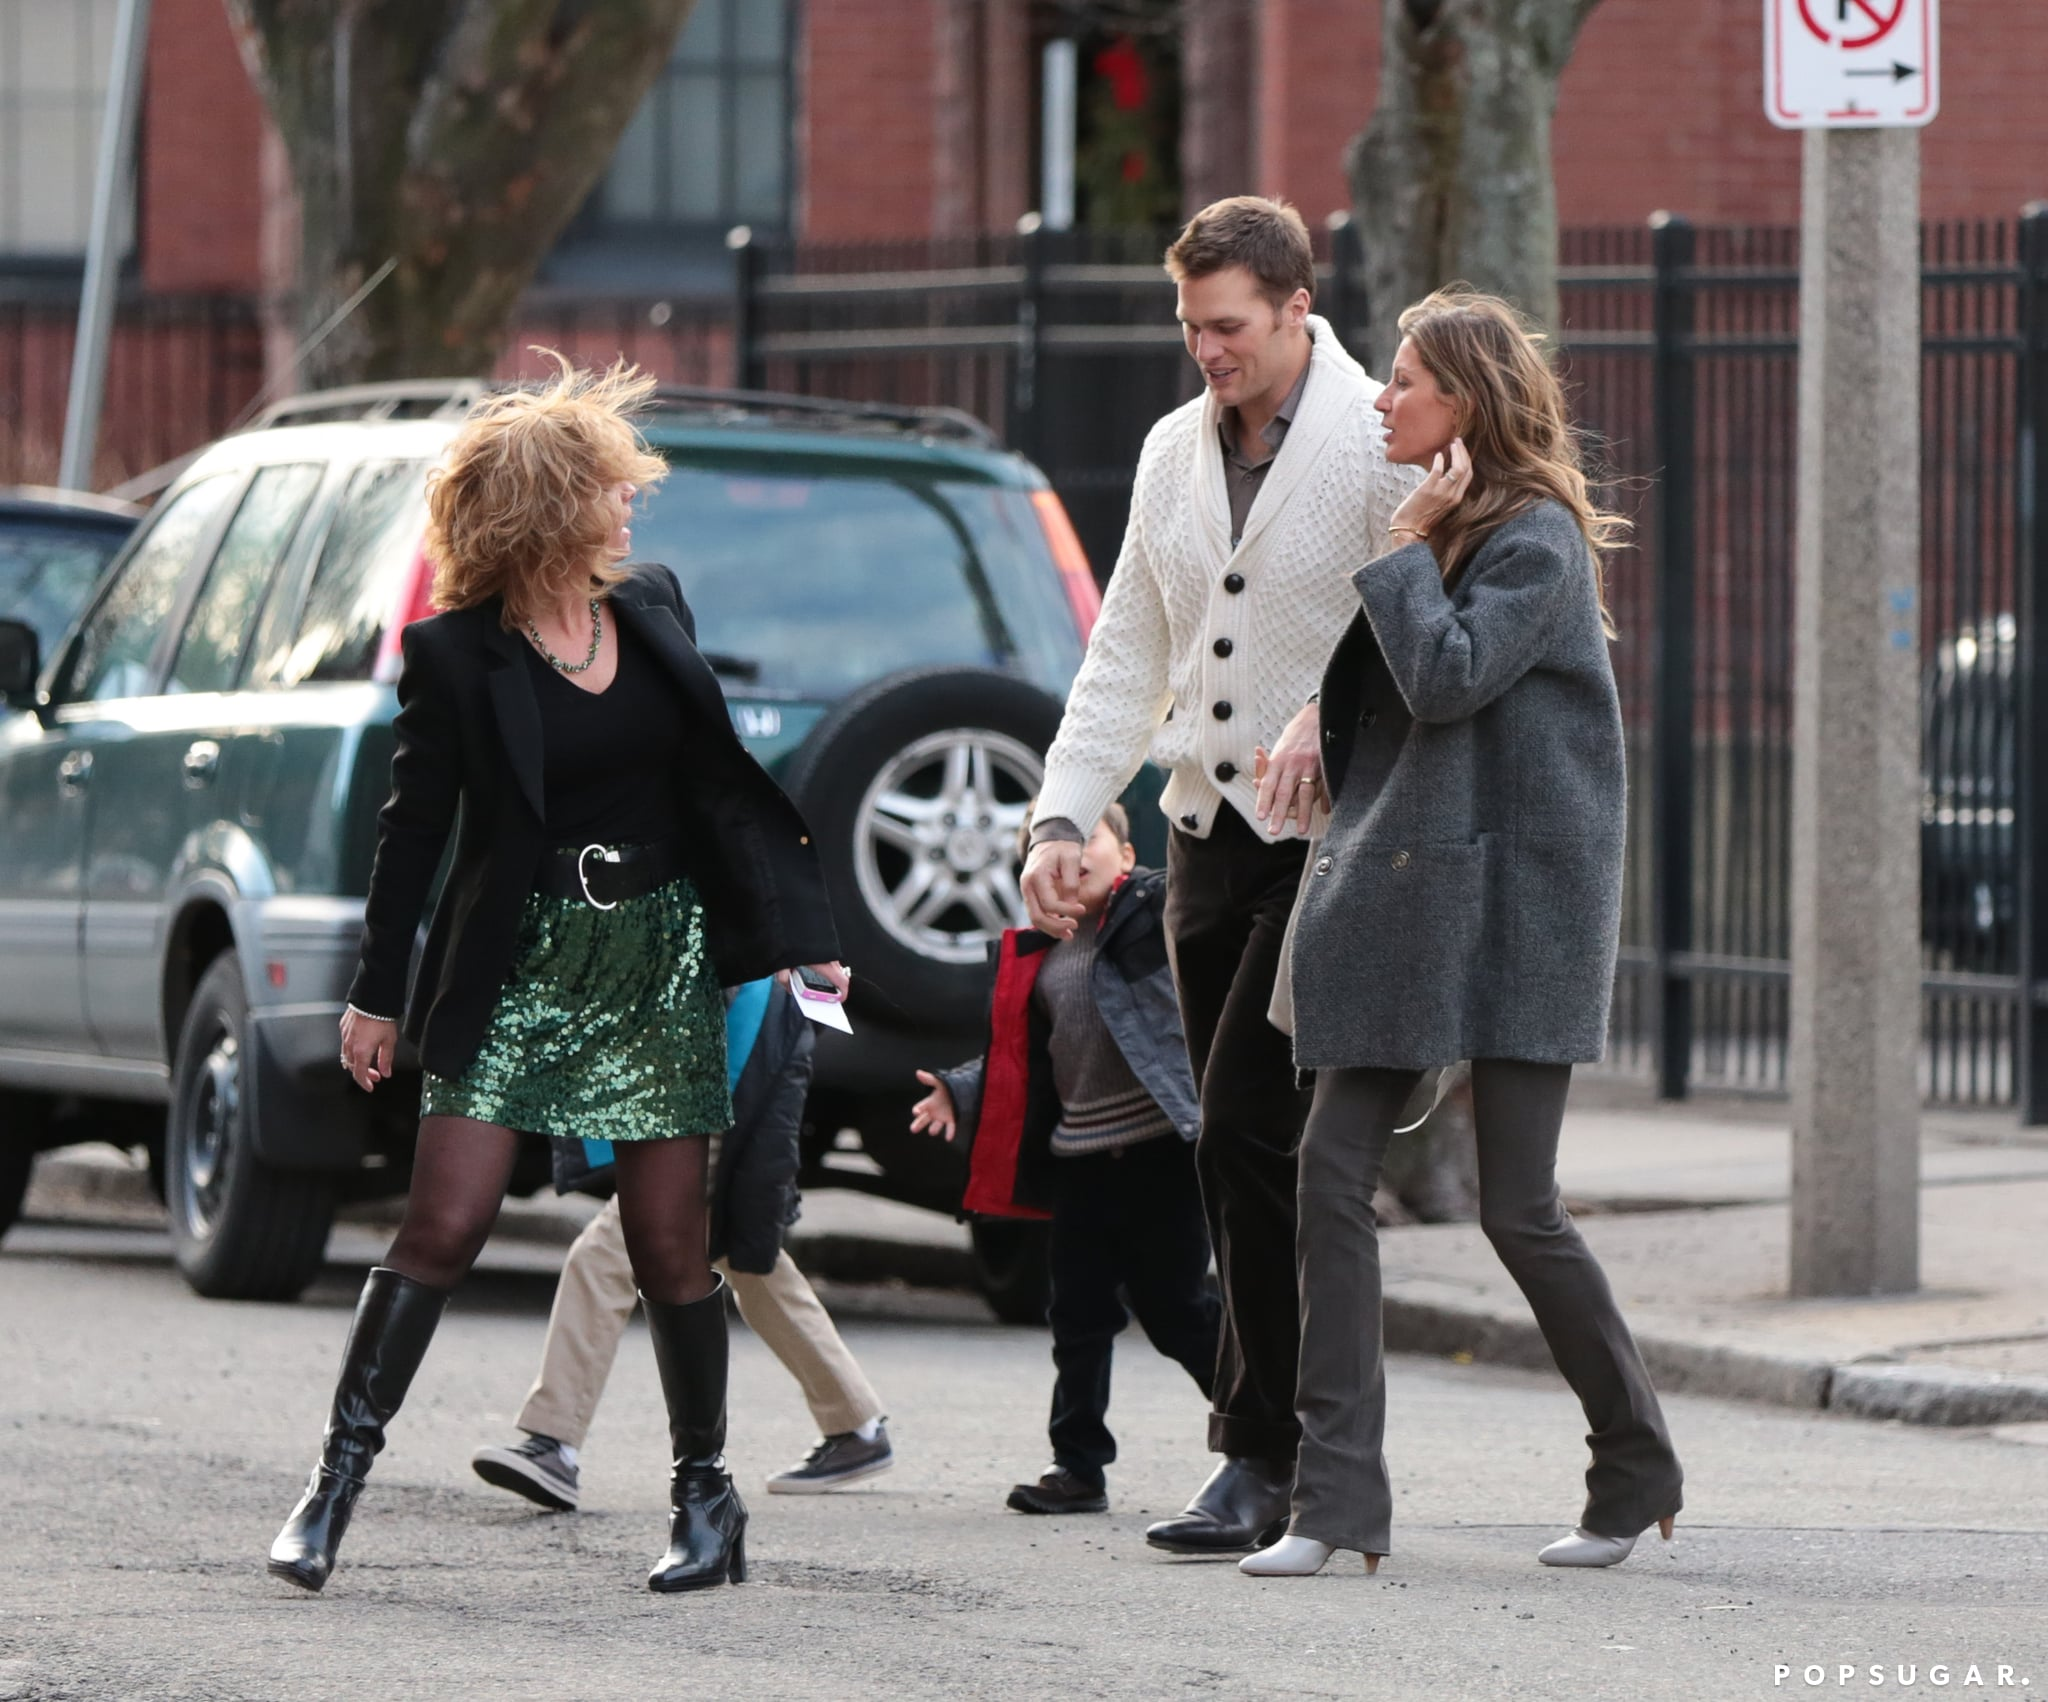 Tom Brady And Gisele Bundchen Stepped Out With Their Family In This Week S Can T Miss Shots Popsugar Celebrity Photo 11